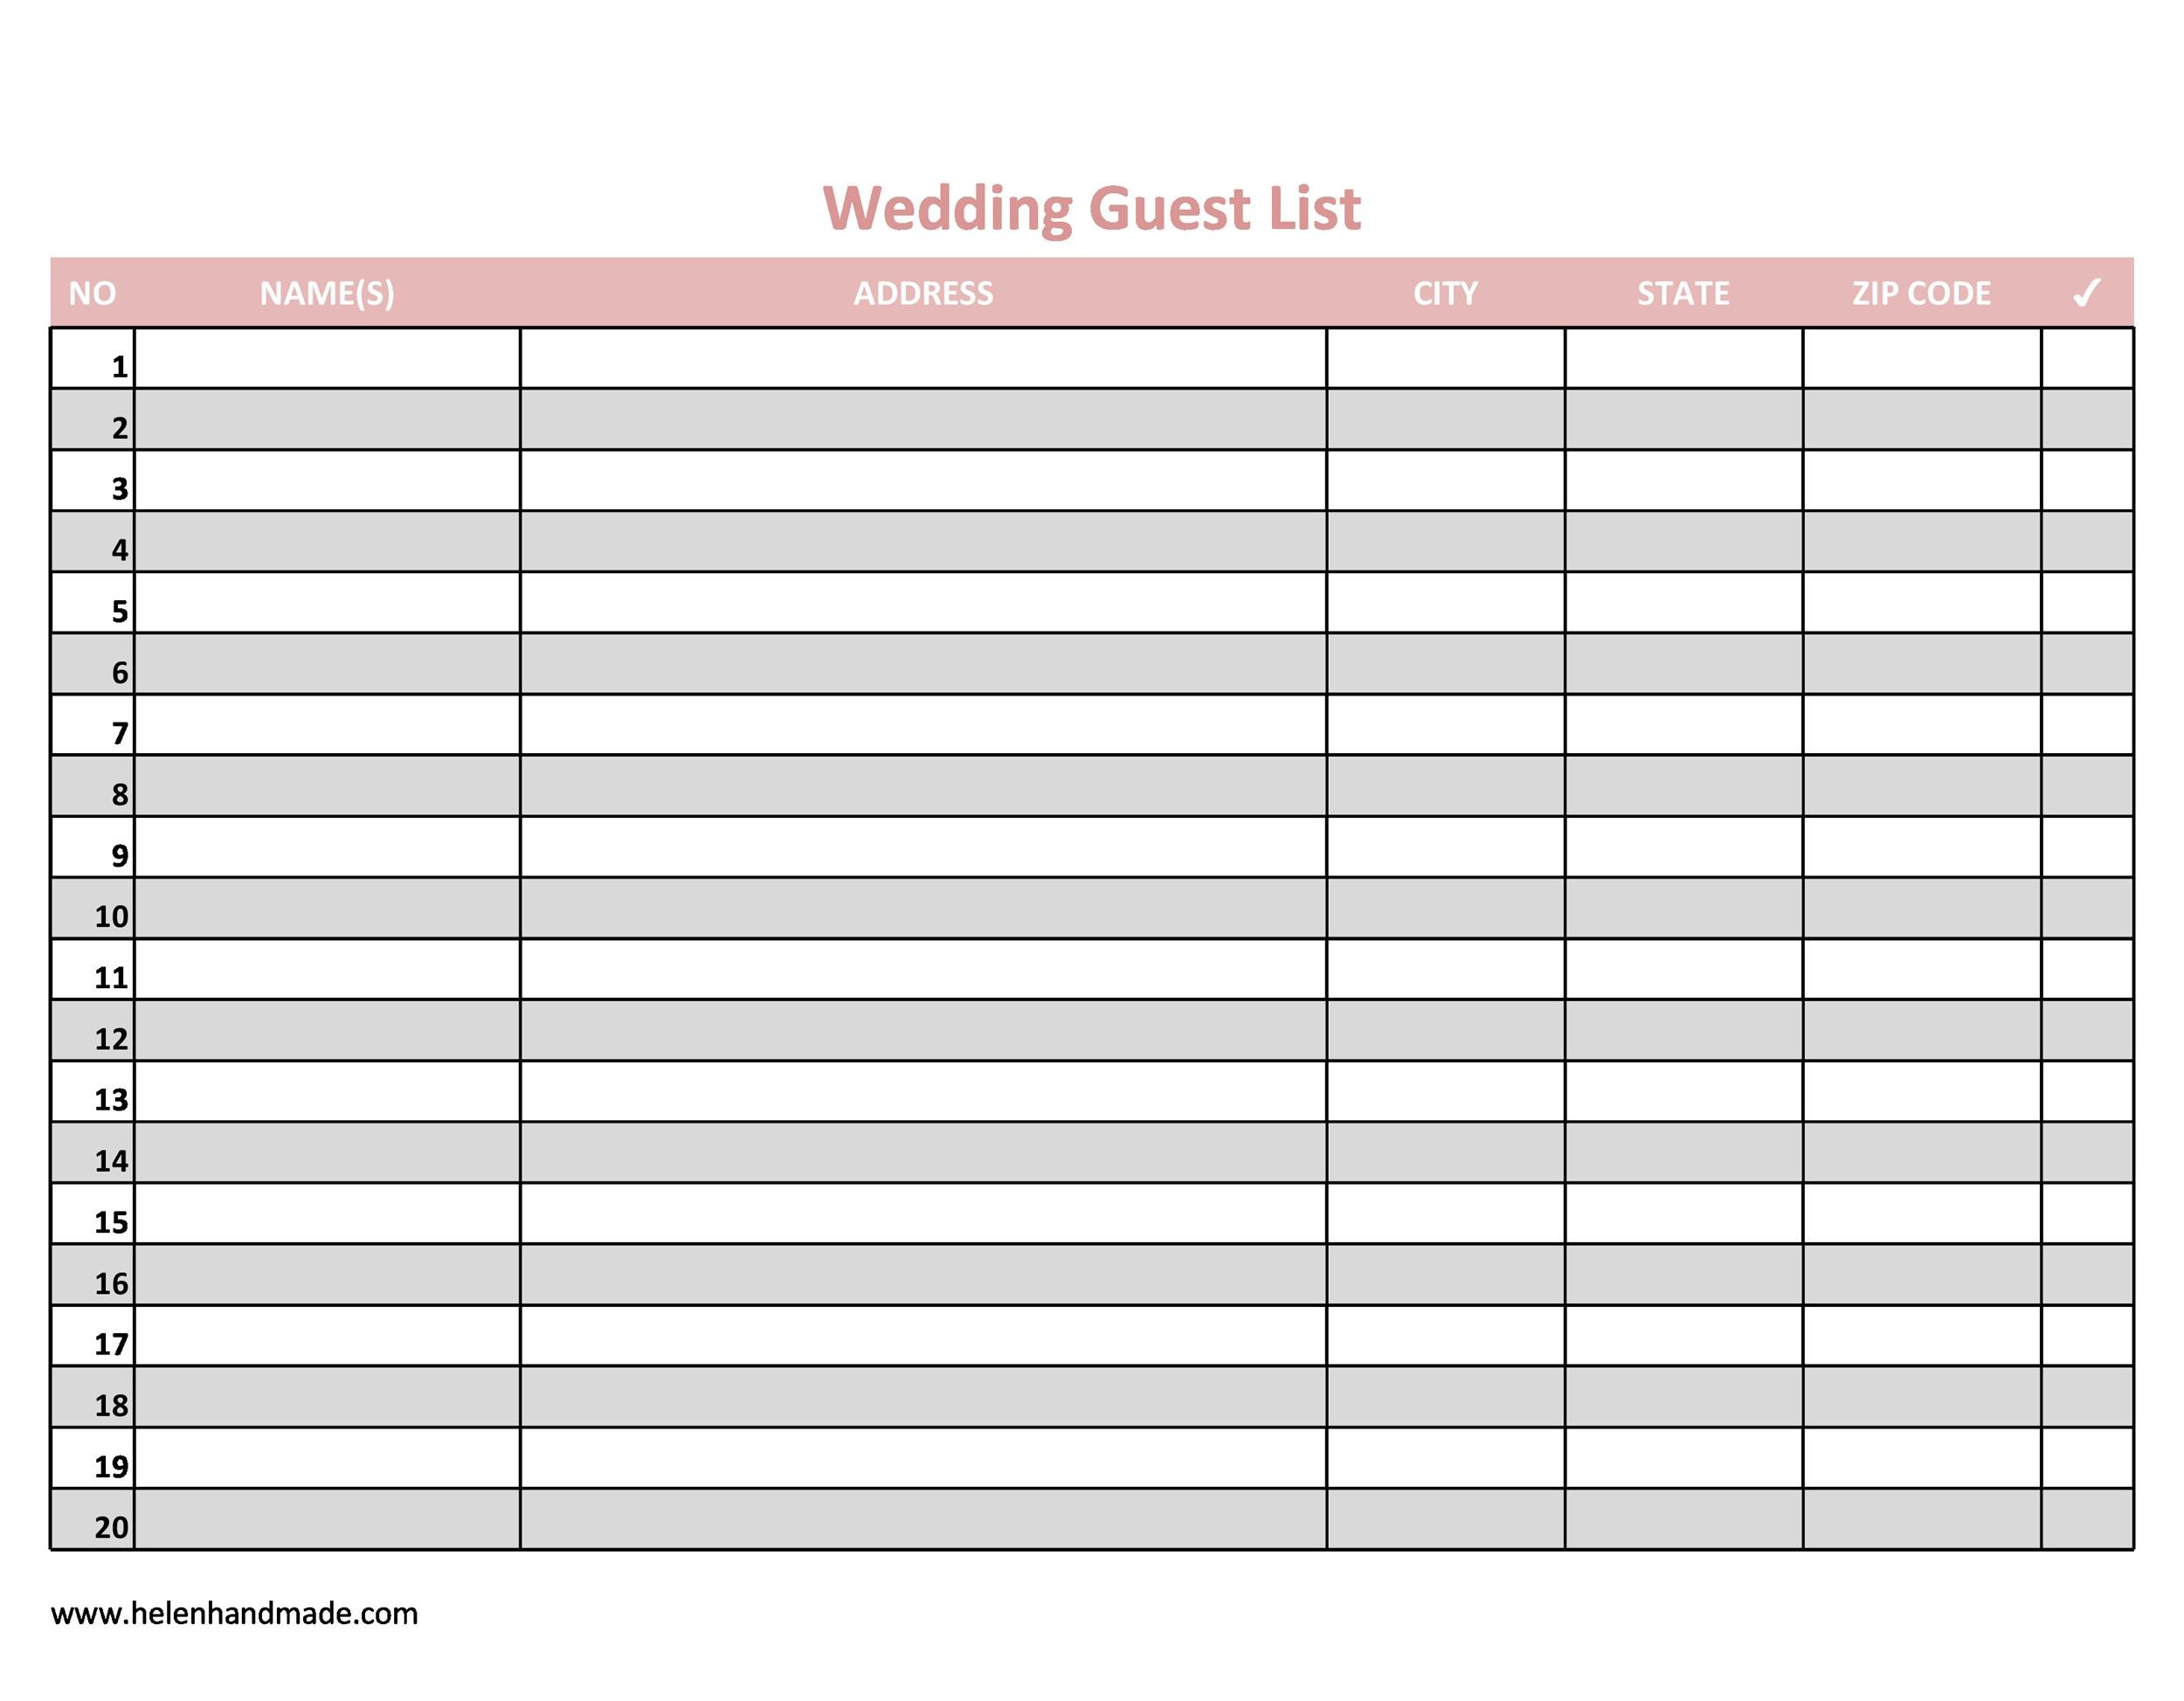 35+ Beautiful Wedding Guest List & Itinerary Templates